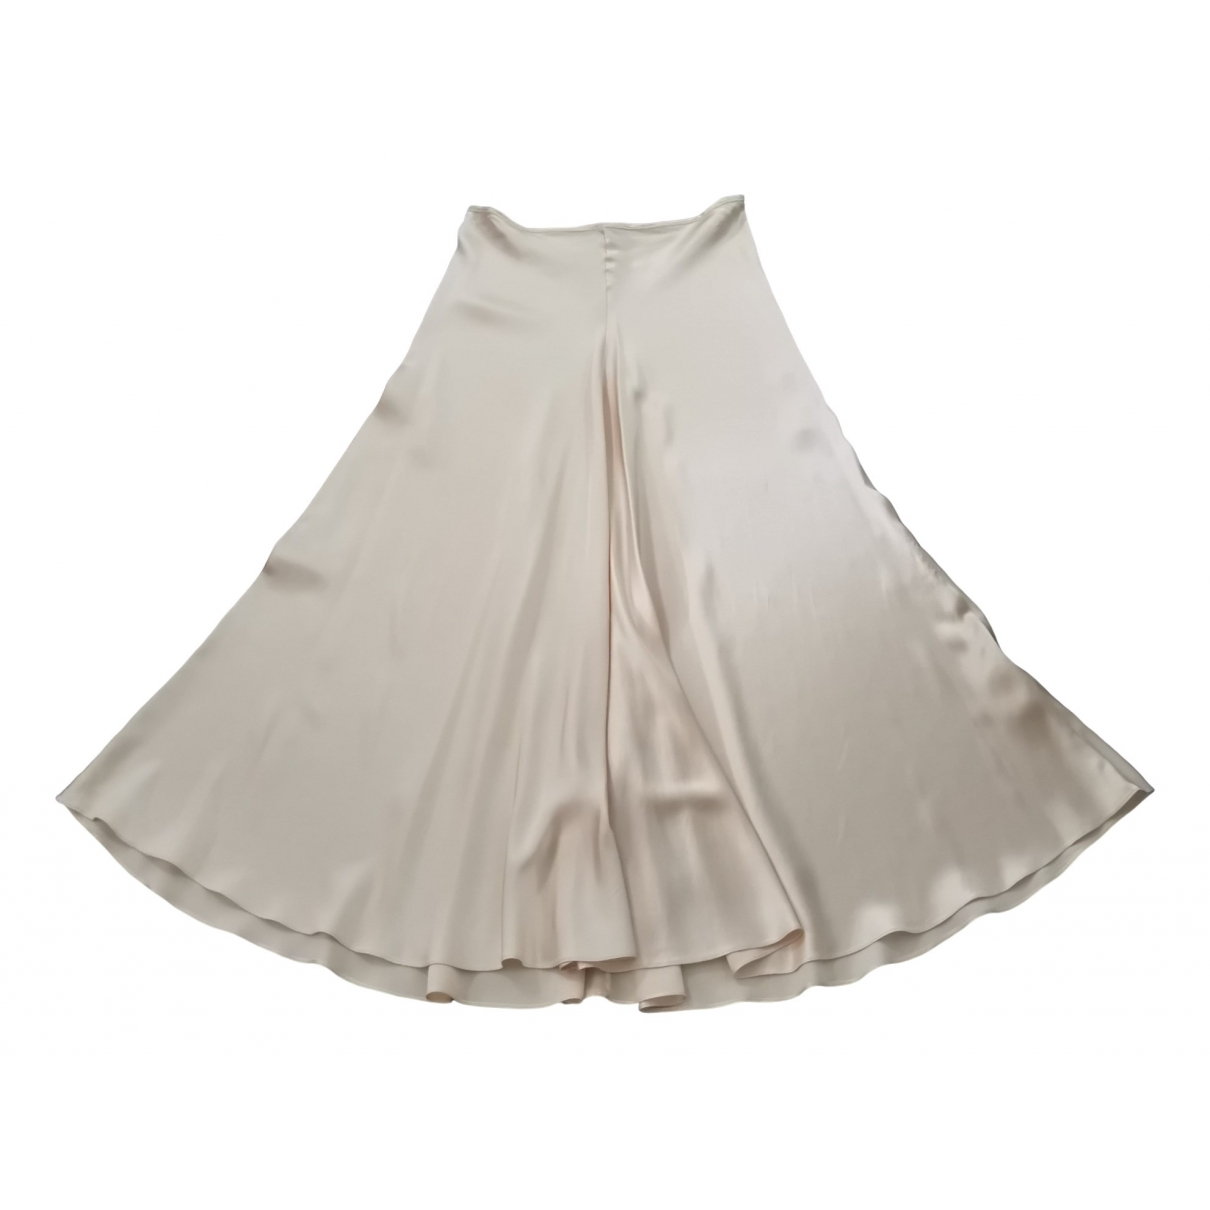 Plein Sud \N Ecru Silk skirt for Women M International